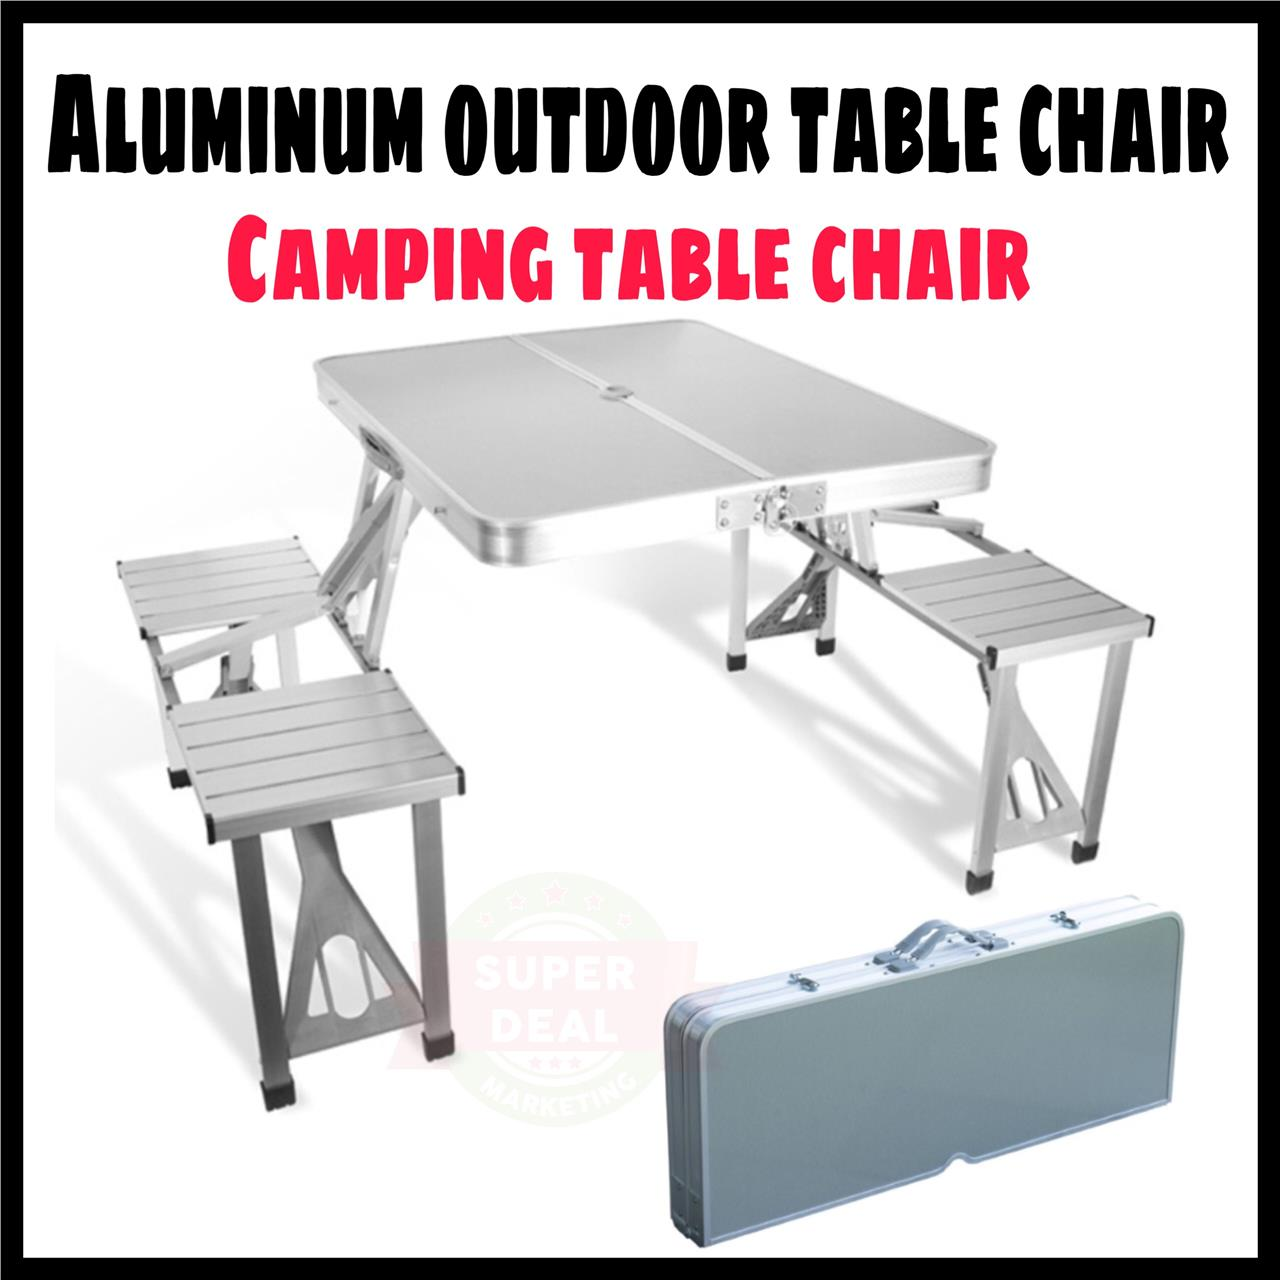 Outdoor chair camping - Offer Aluminium Picnic Table Chair Camping Outdoor Table Chair Meja